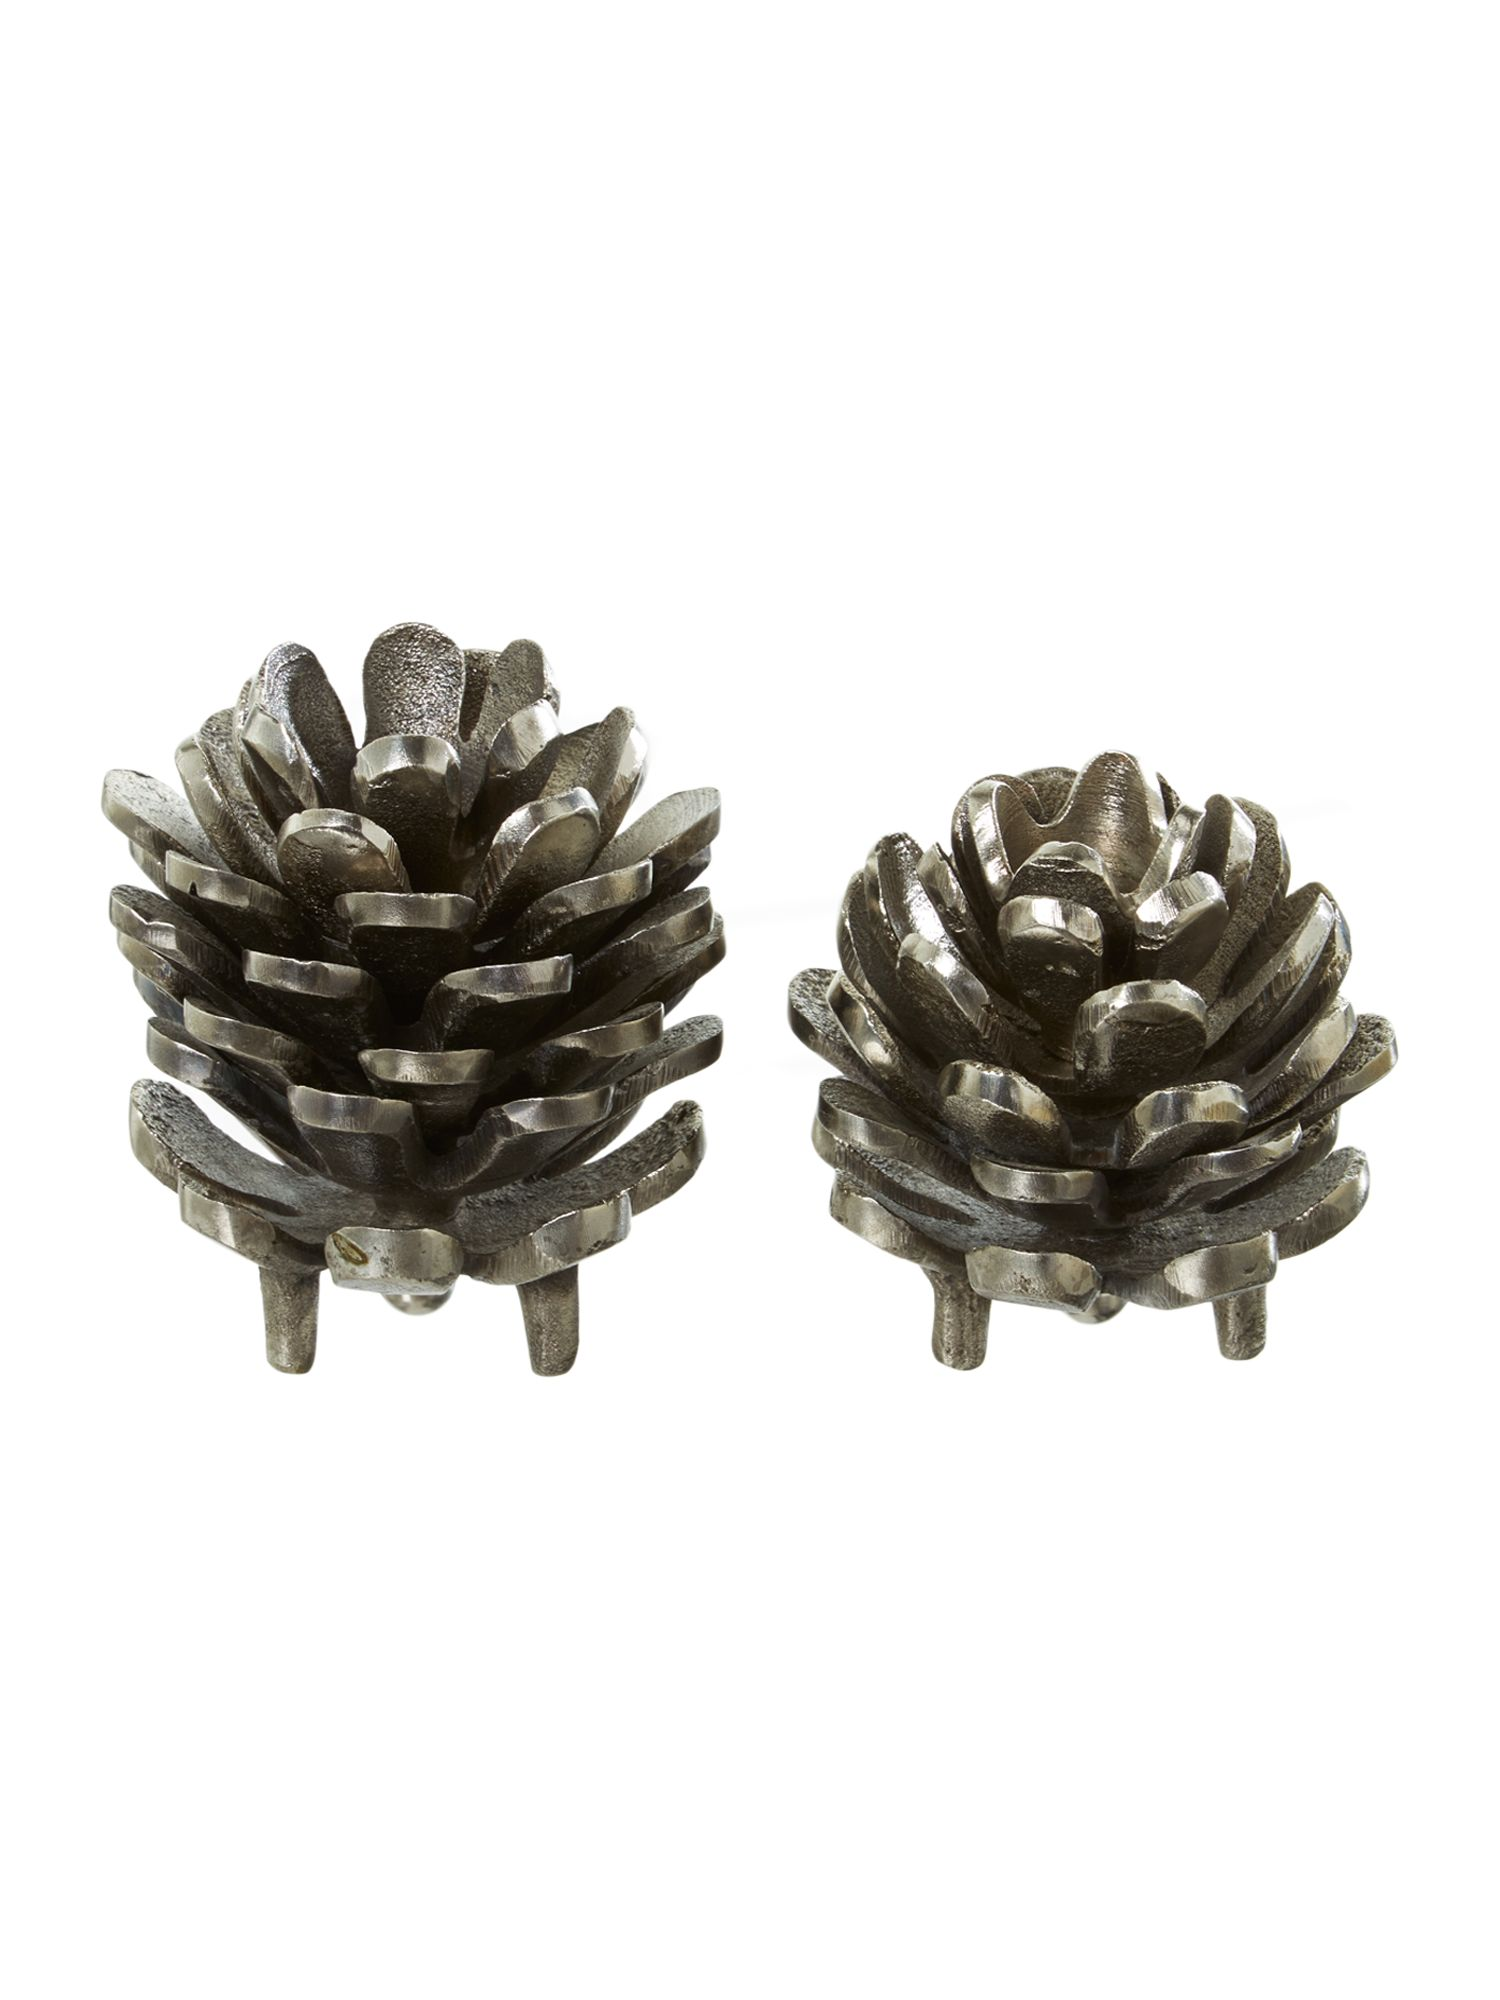 Pine cone ornament, small